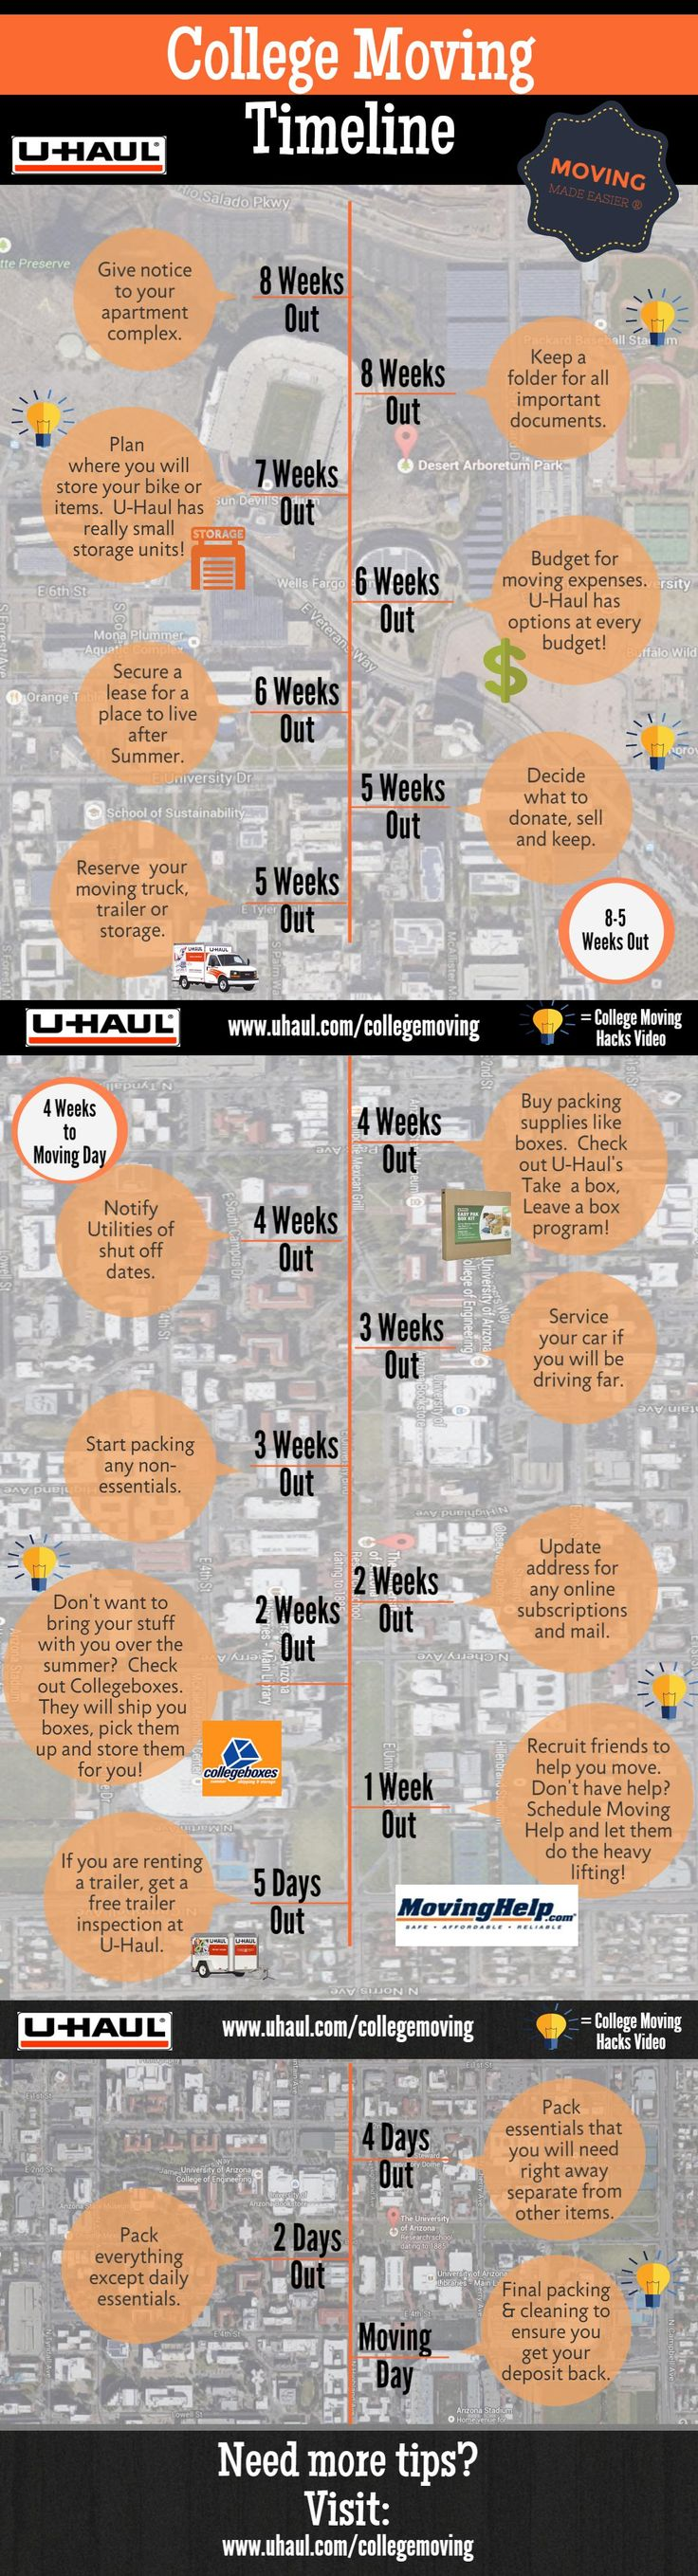 College Moving Tips: Moving Out Timeline (INFOGRAPHIC)